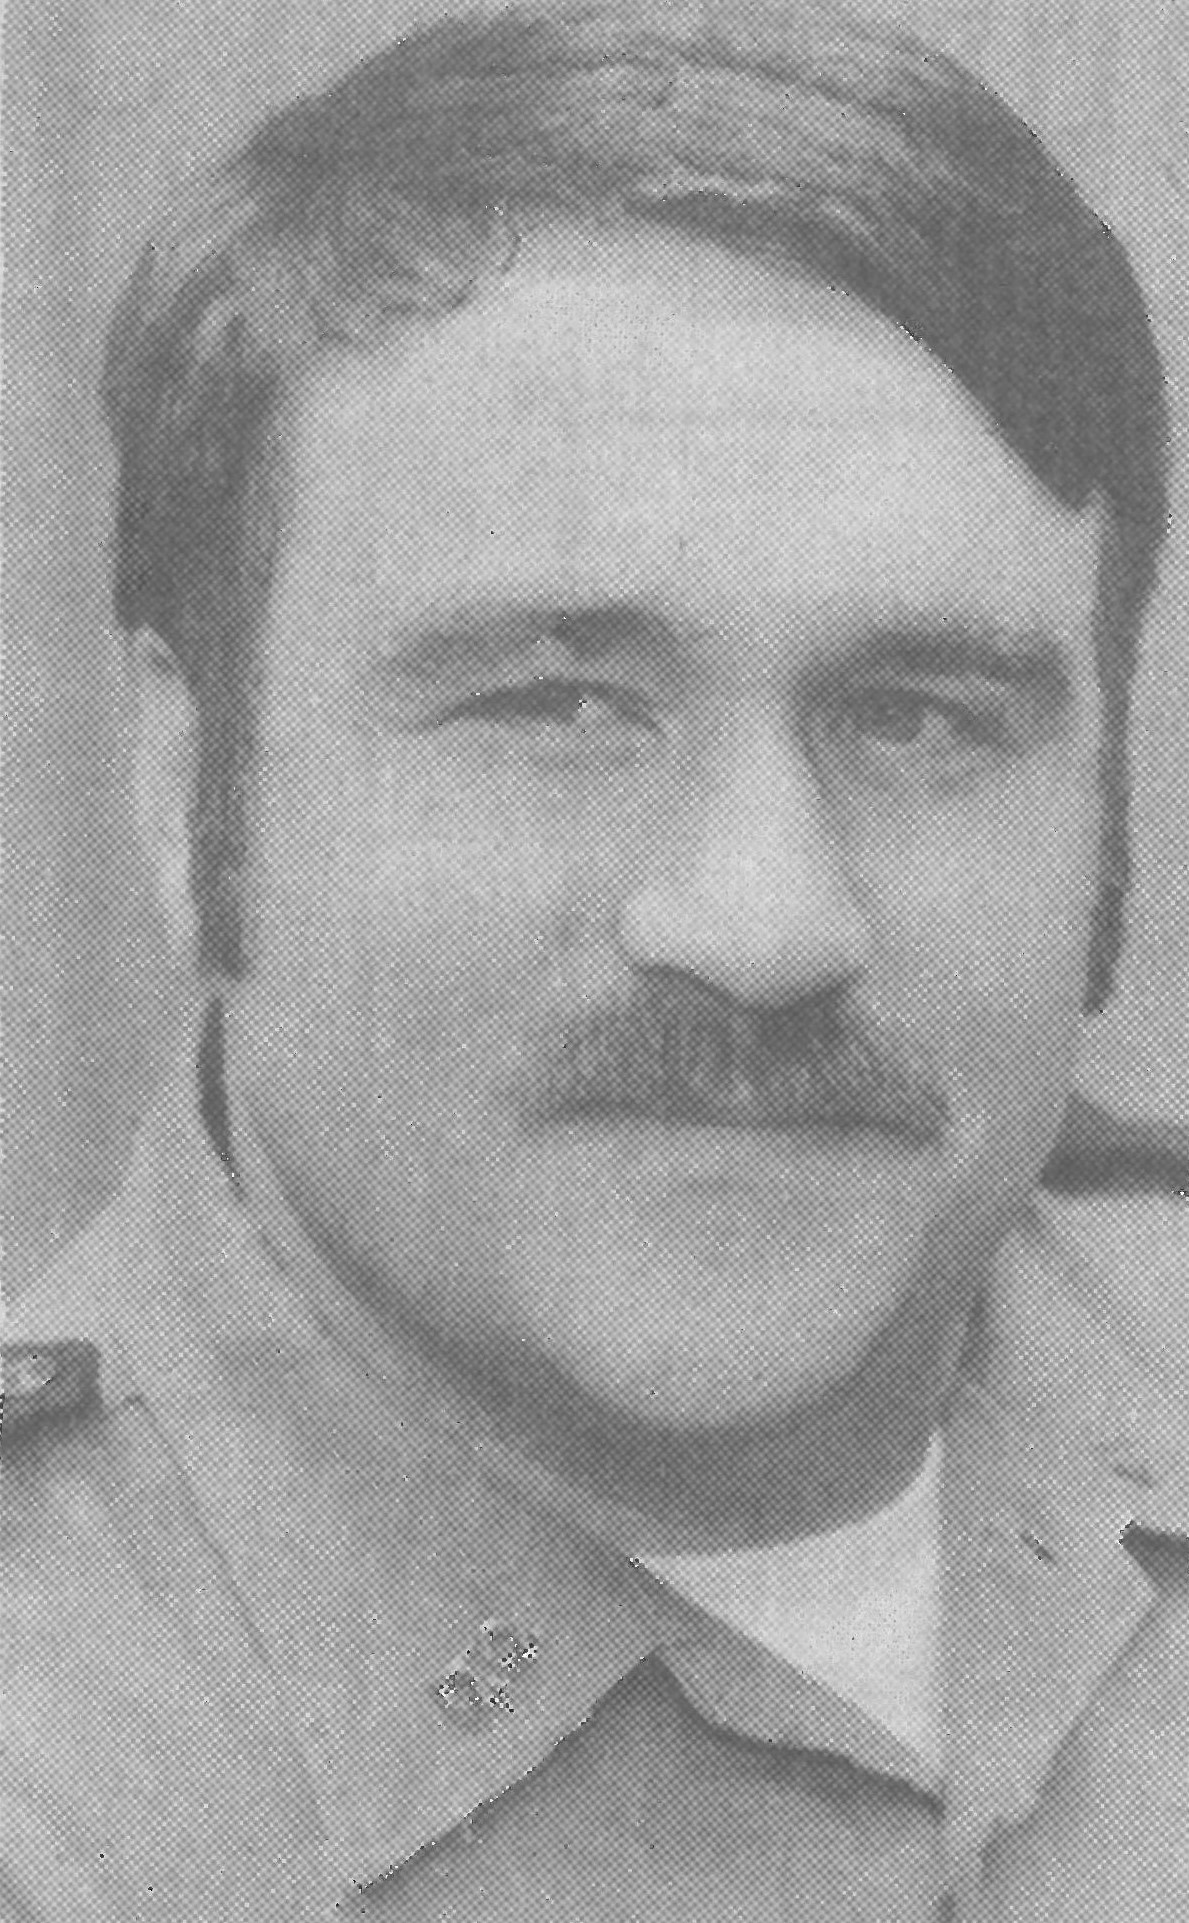 Corporal Virgle Dewey Knight, Jr. | Douglas County Sheriff's Office, Oregon